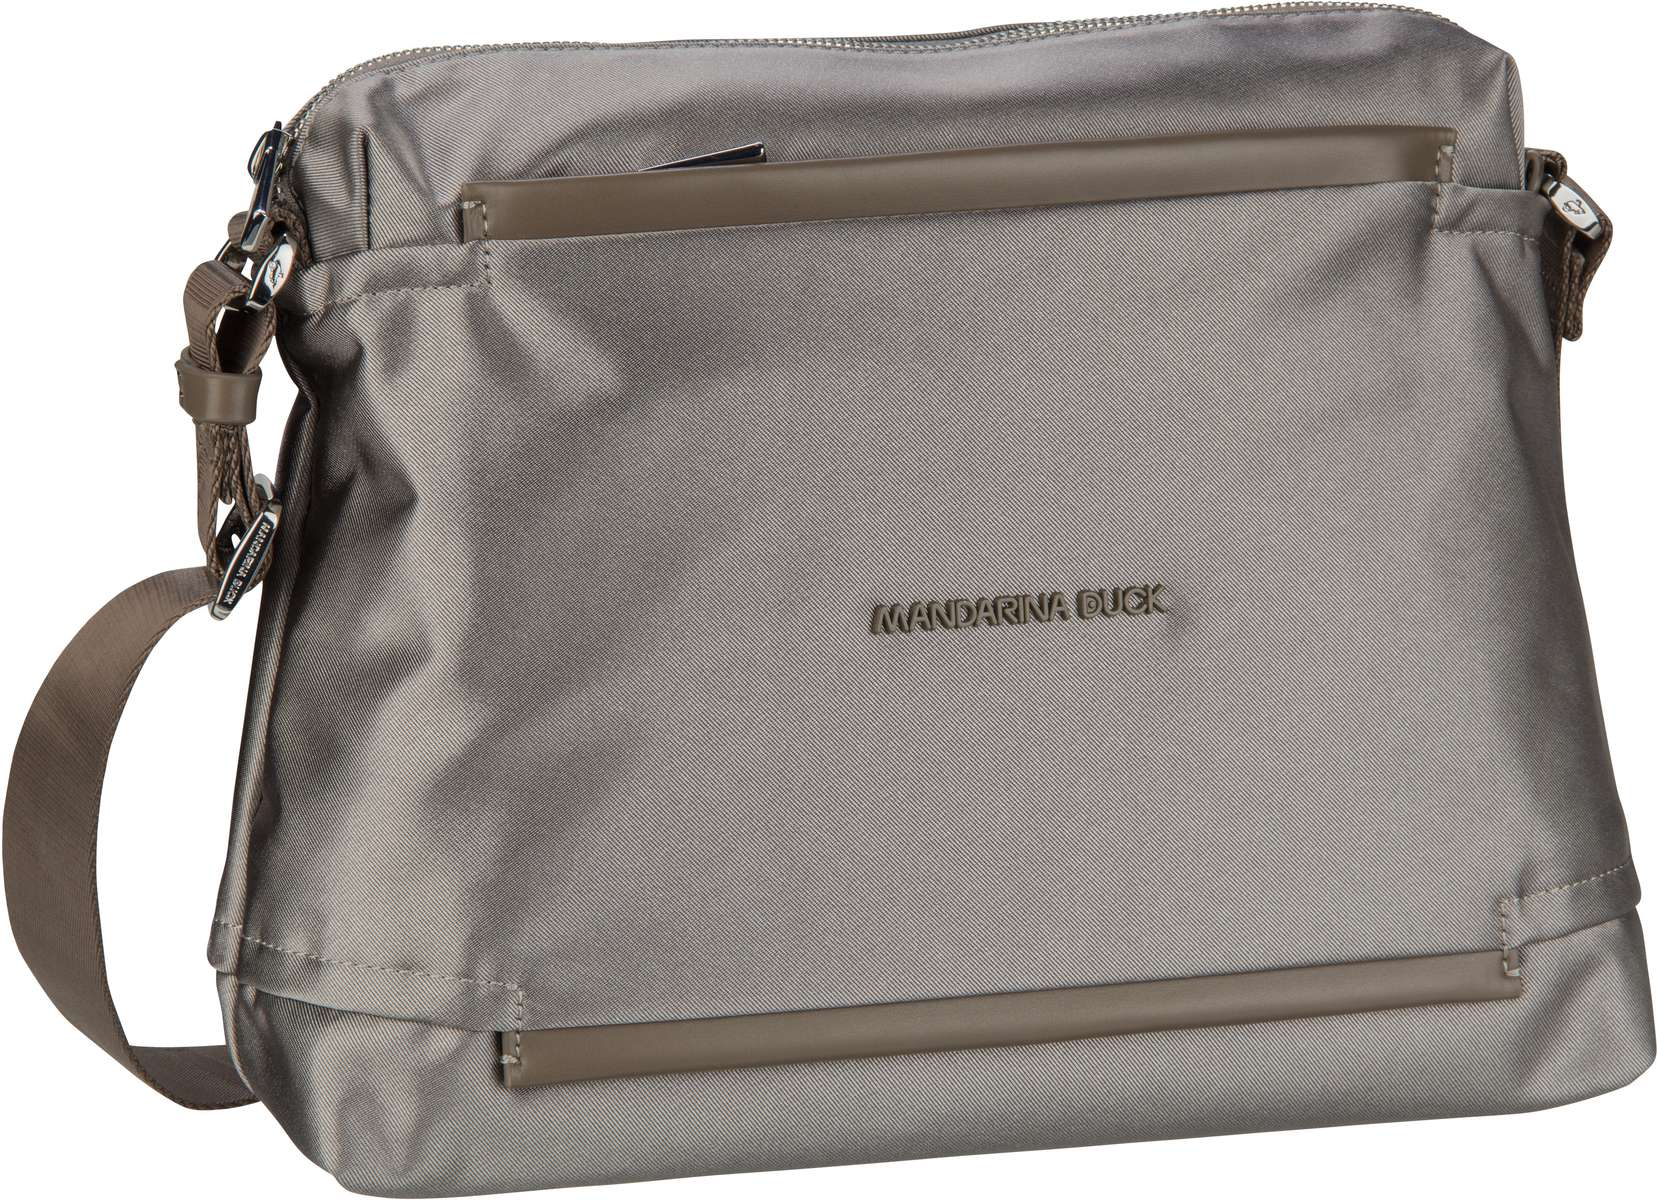 Umhängetasche Daphne Shoulder Bag Medium PDT06 Gun Metal